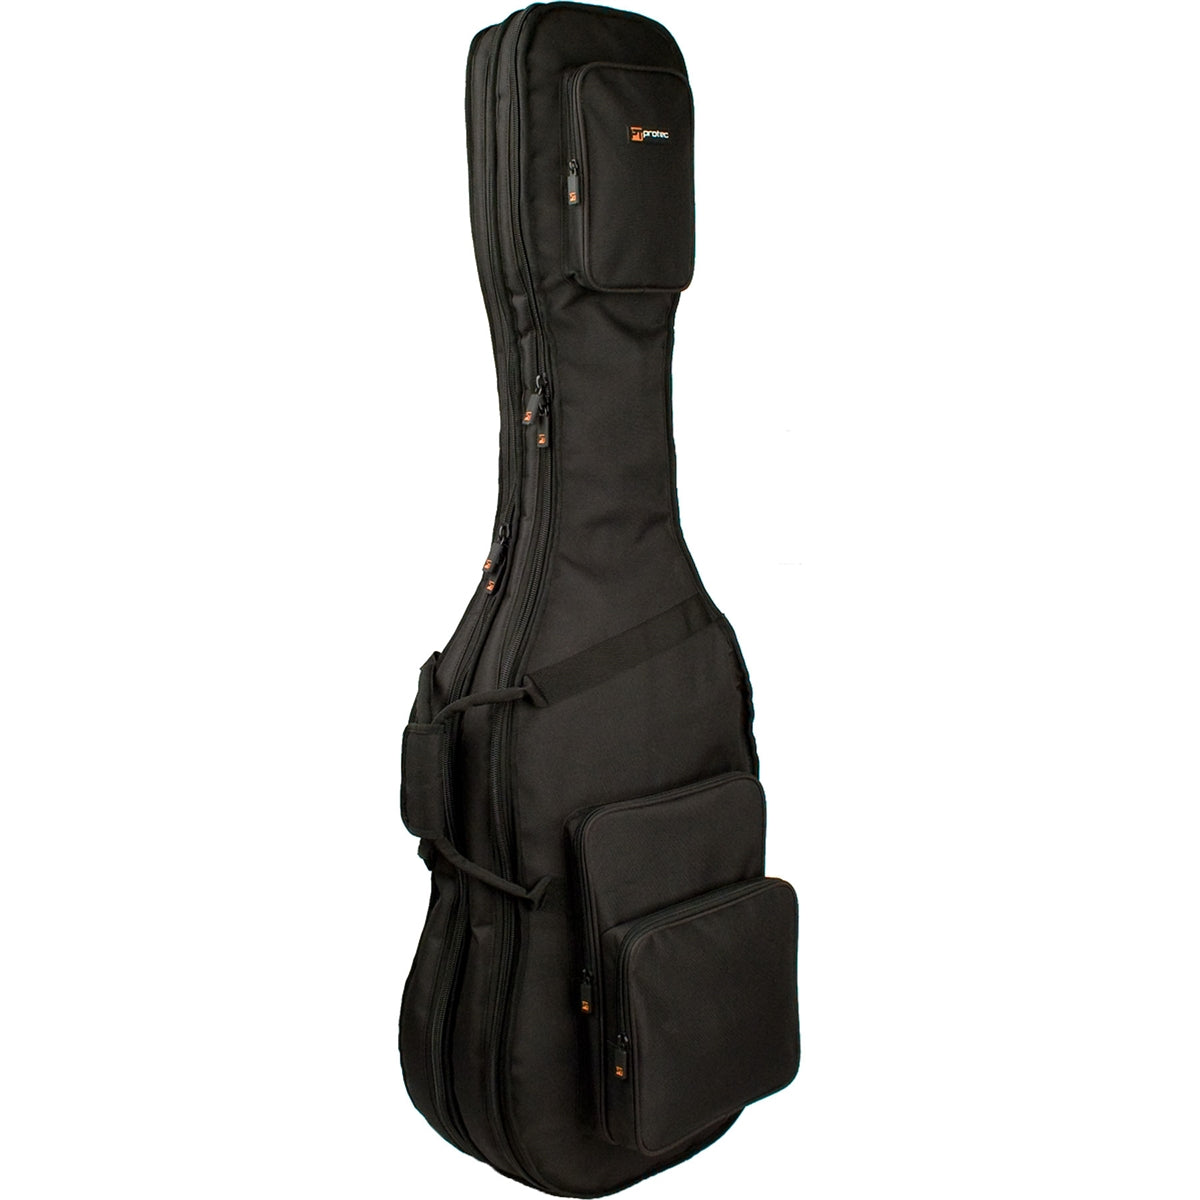 PROTEC Double Bass Guitar Gig Bag - Gold Series